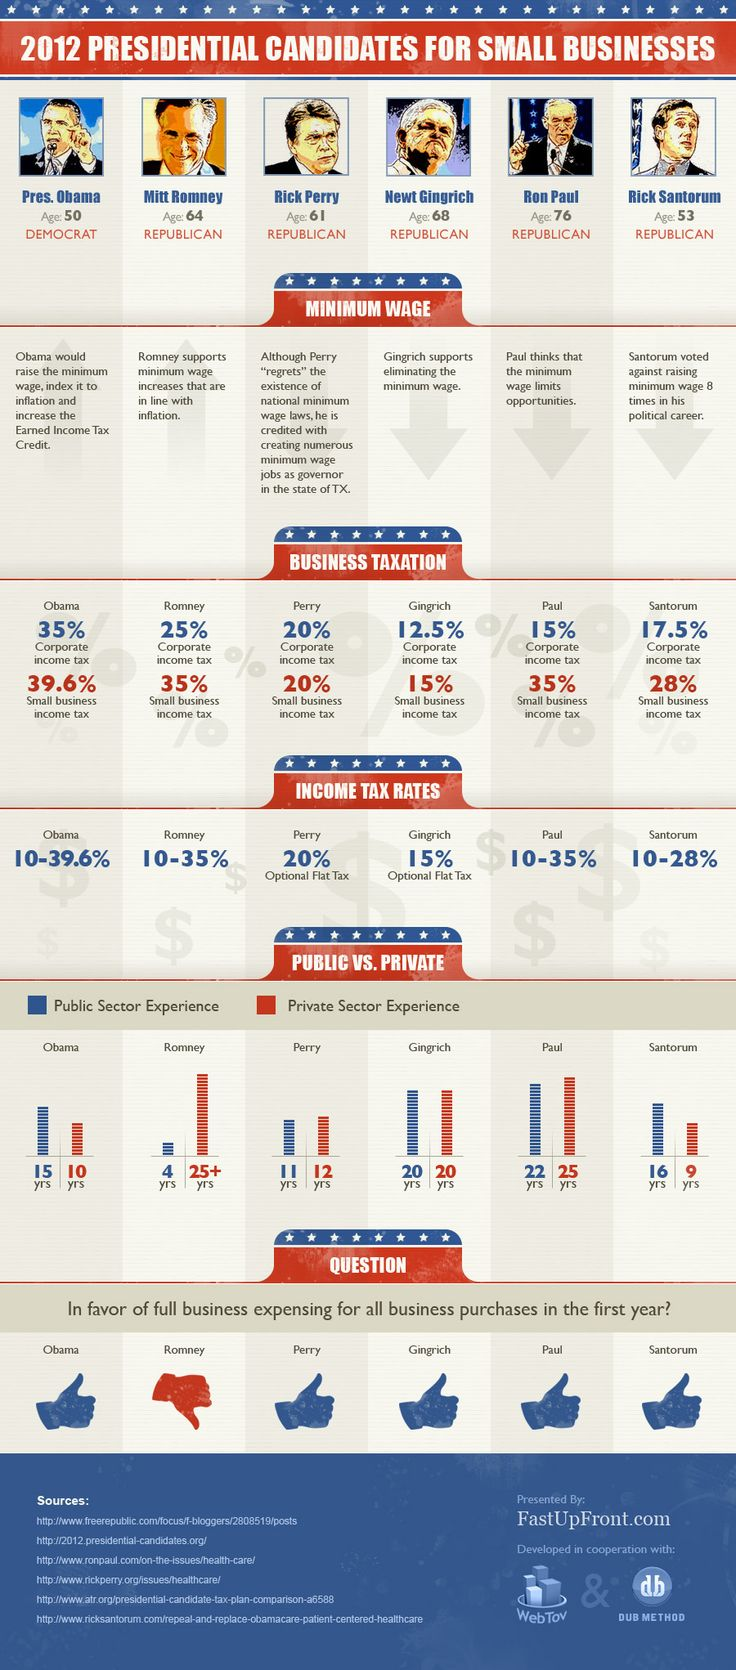 Information Small Business Owners need about the upcoming election.